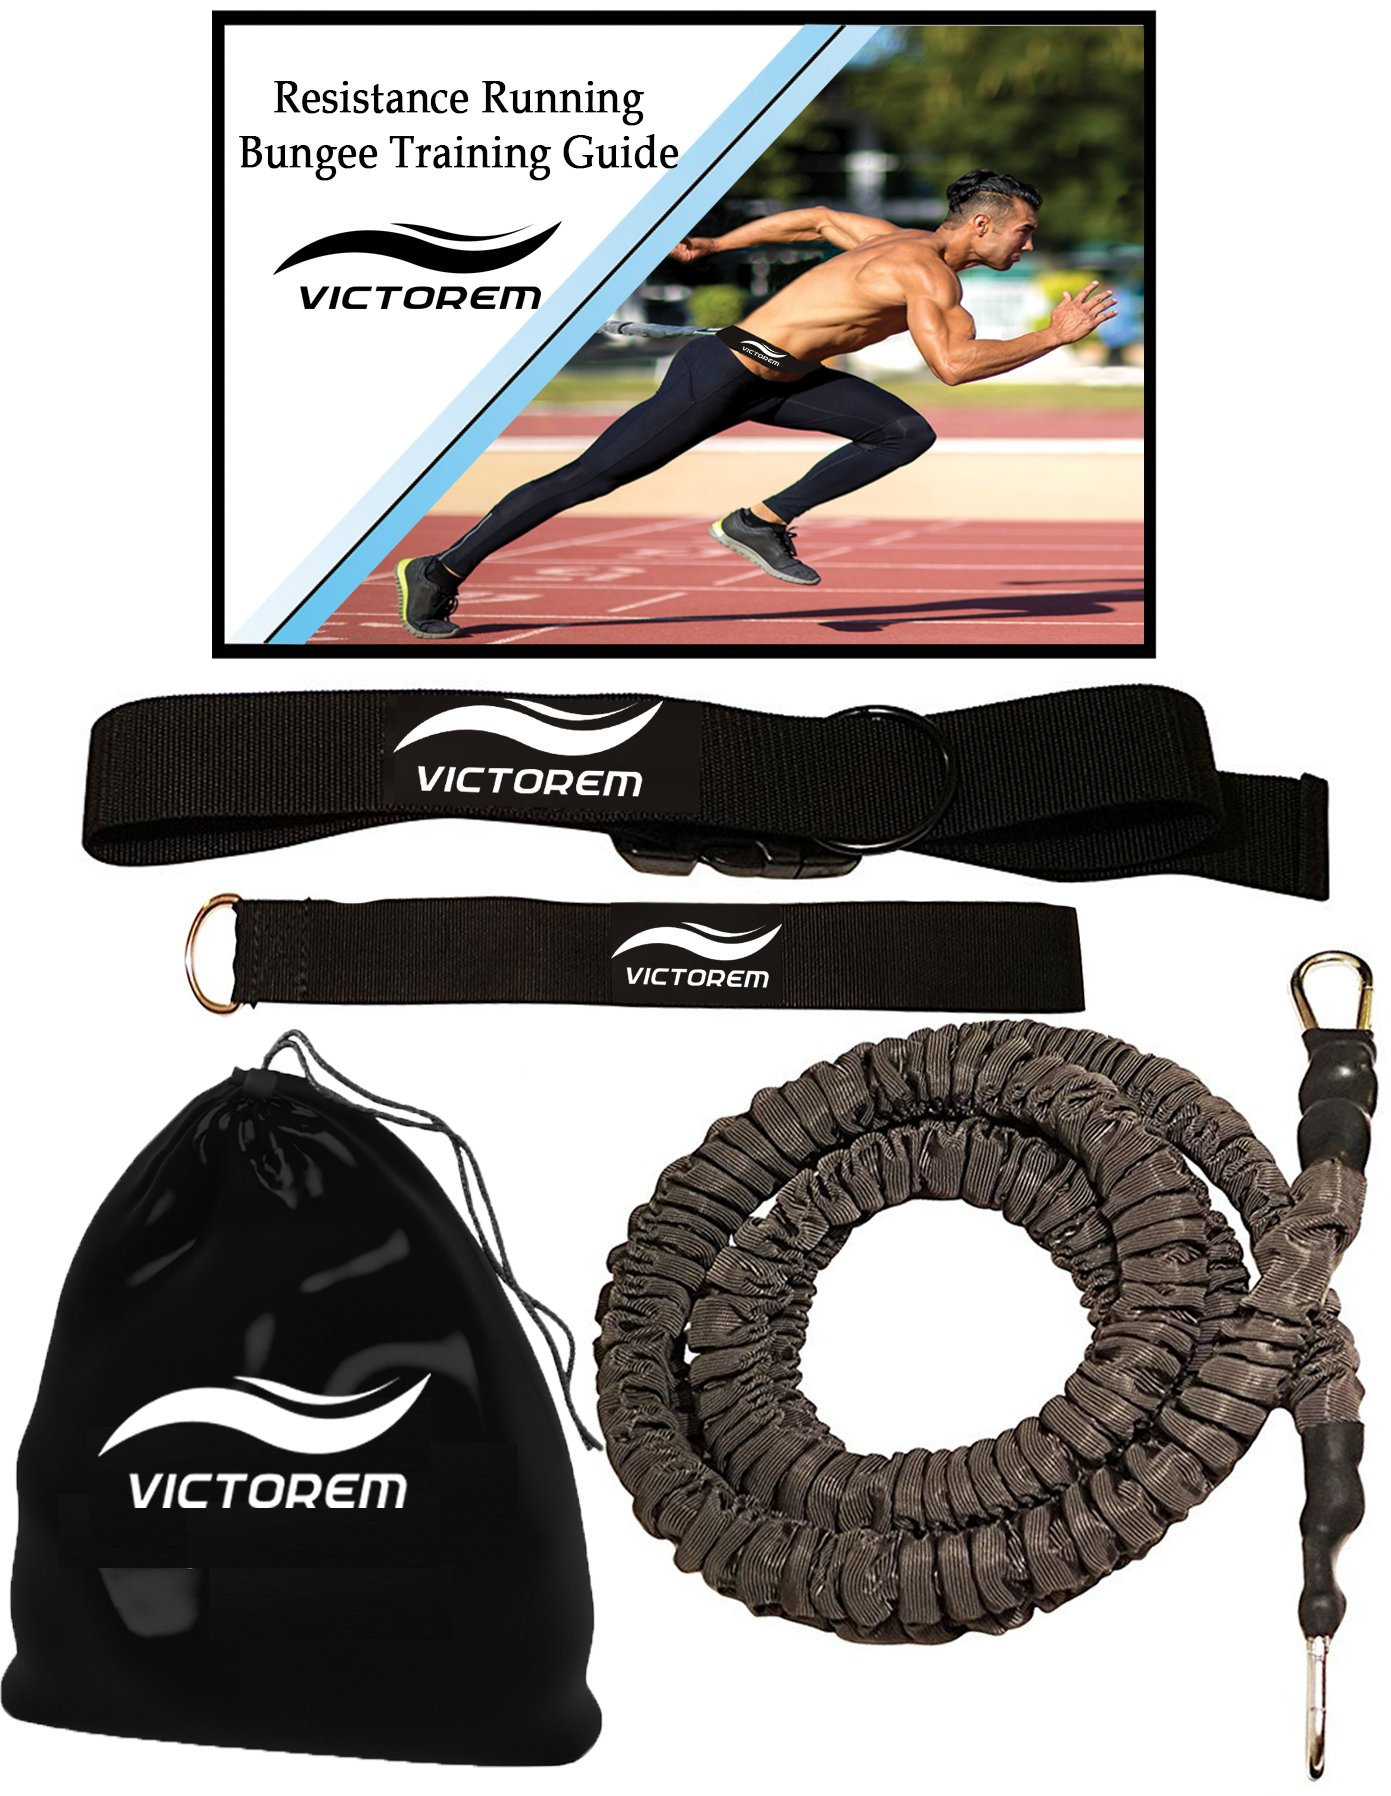 VICTOREM Strength 80 Lb Resistance Running Training Bungee Band (Waist) Workout Guide– 8 Ft - 360° Agility, Speed, Fitness for Fast-Twitch Athletes – Gym Equipment for Football, Basketball, Crossfit